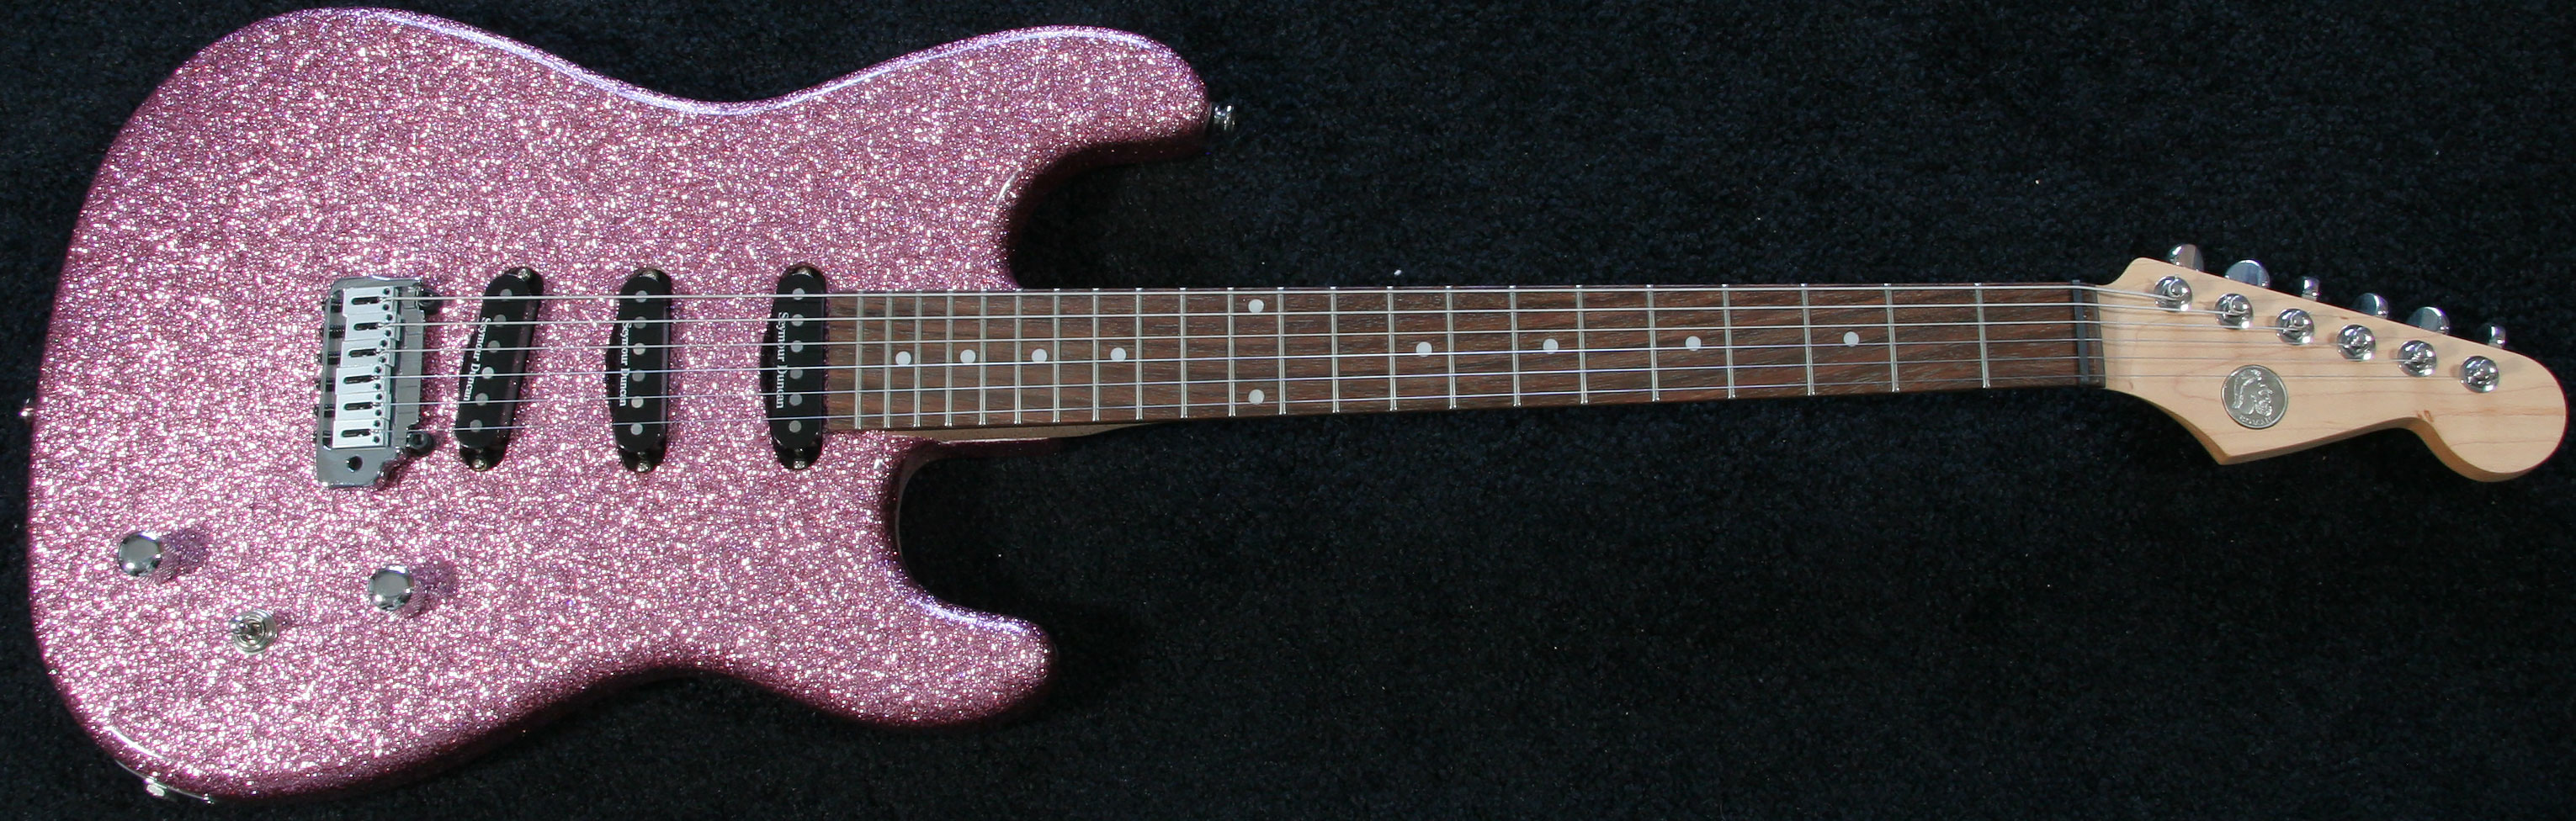 Pink Guitars Pink Colored Guitars Pink Stained Guitars